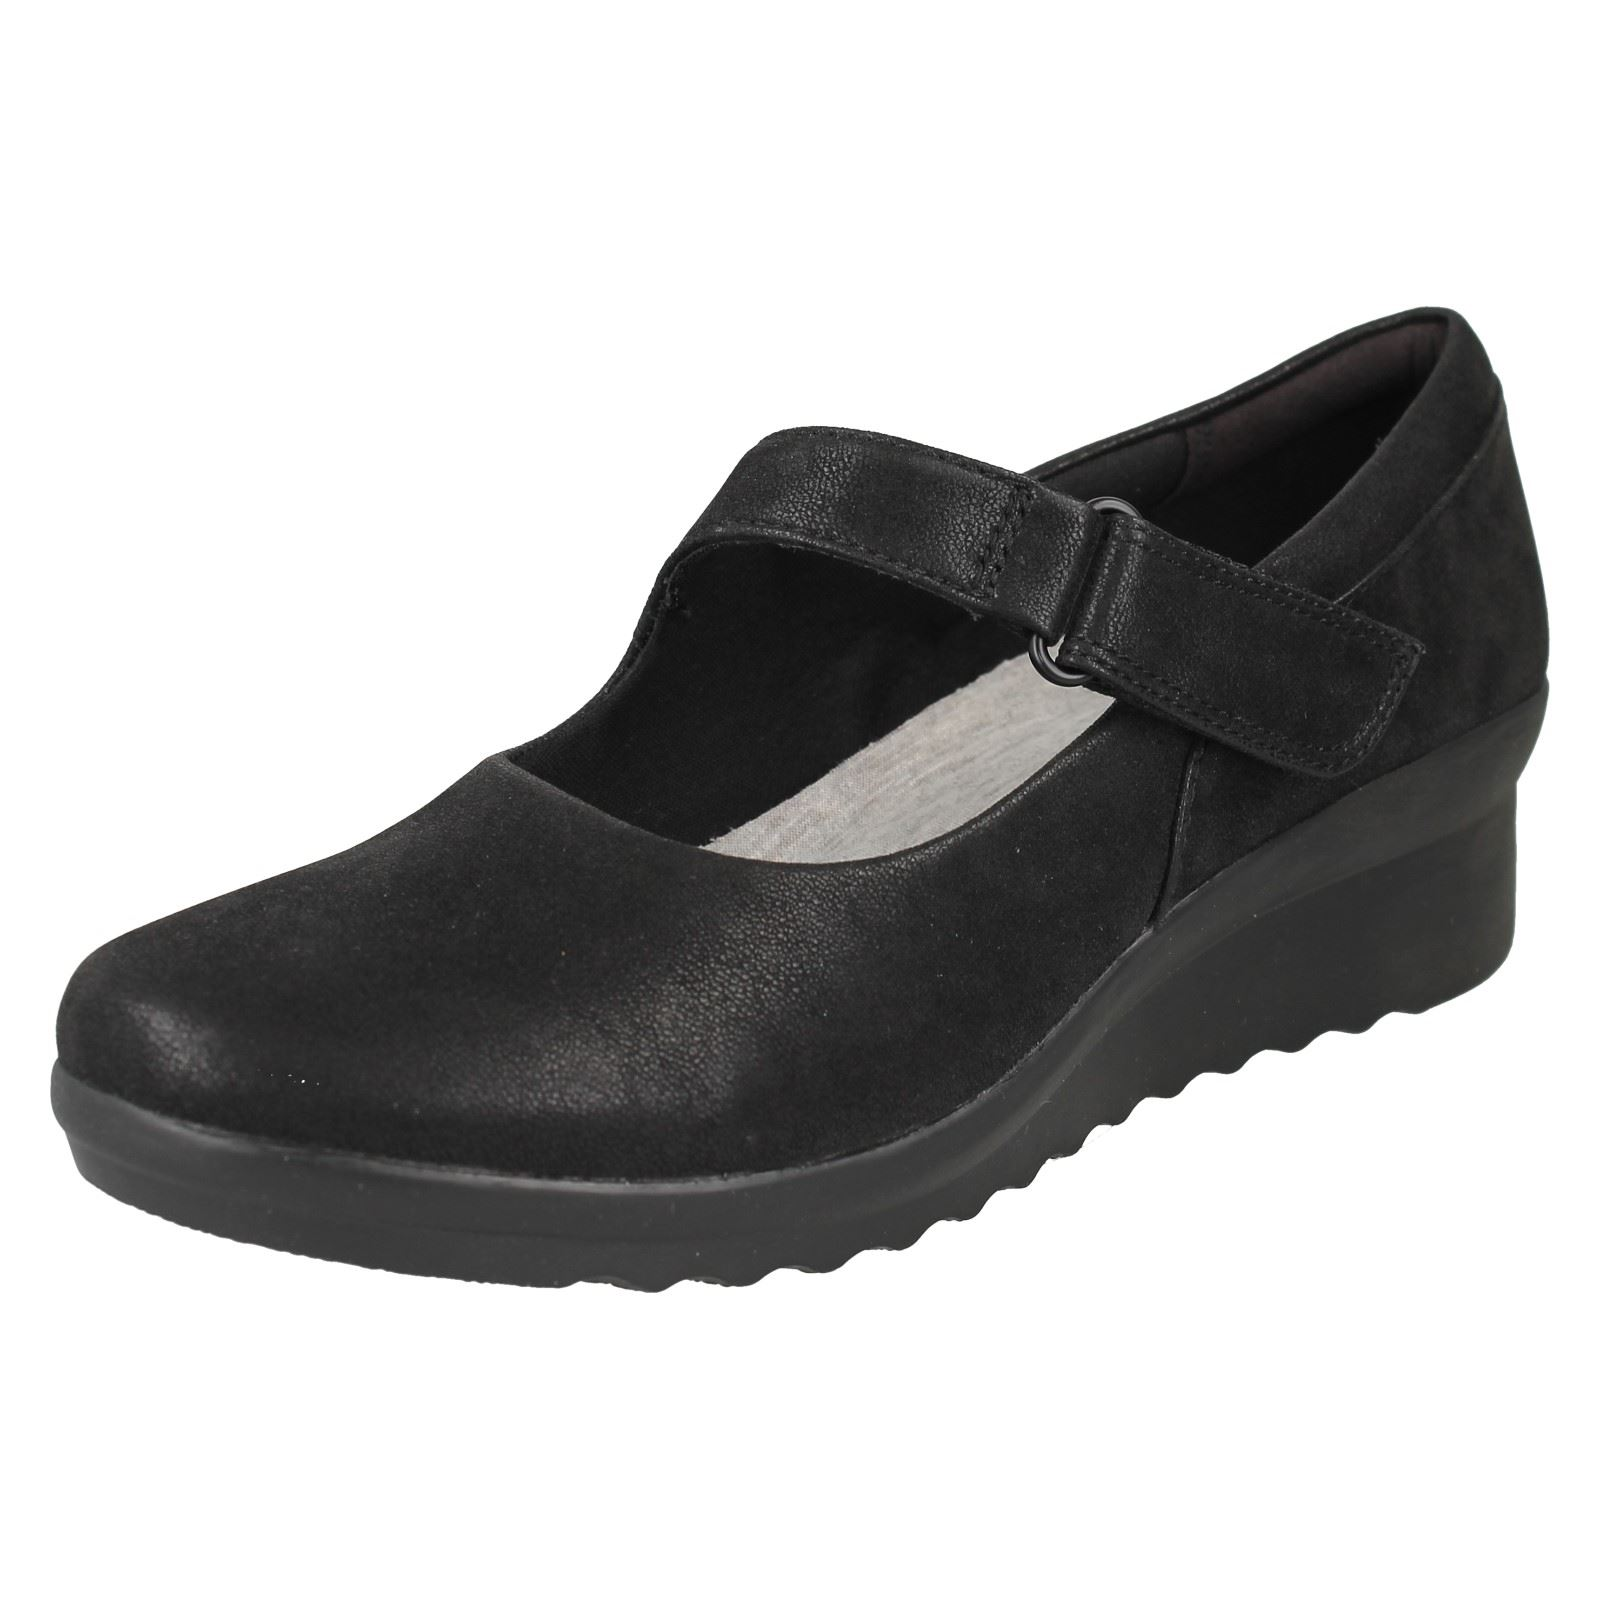 235303ccf6f Clarks Caddell Yale Ladies Wedge Cloudsteppers Shoe Black UK 7. About this  product. Picture 1 of 10  Picture 2 of 10 ...